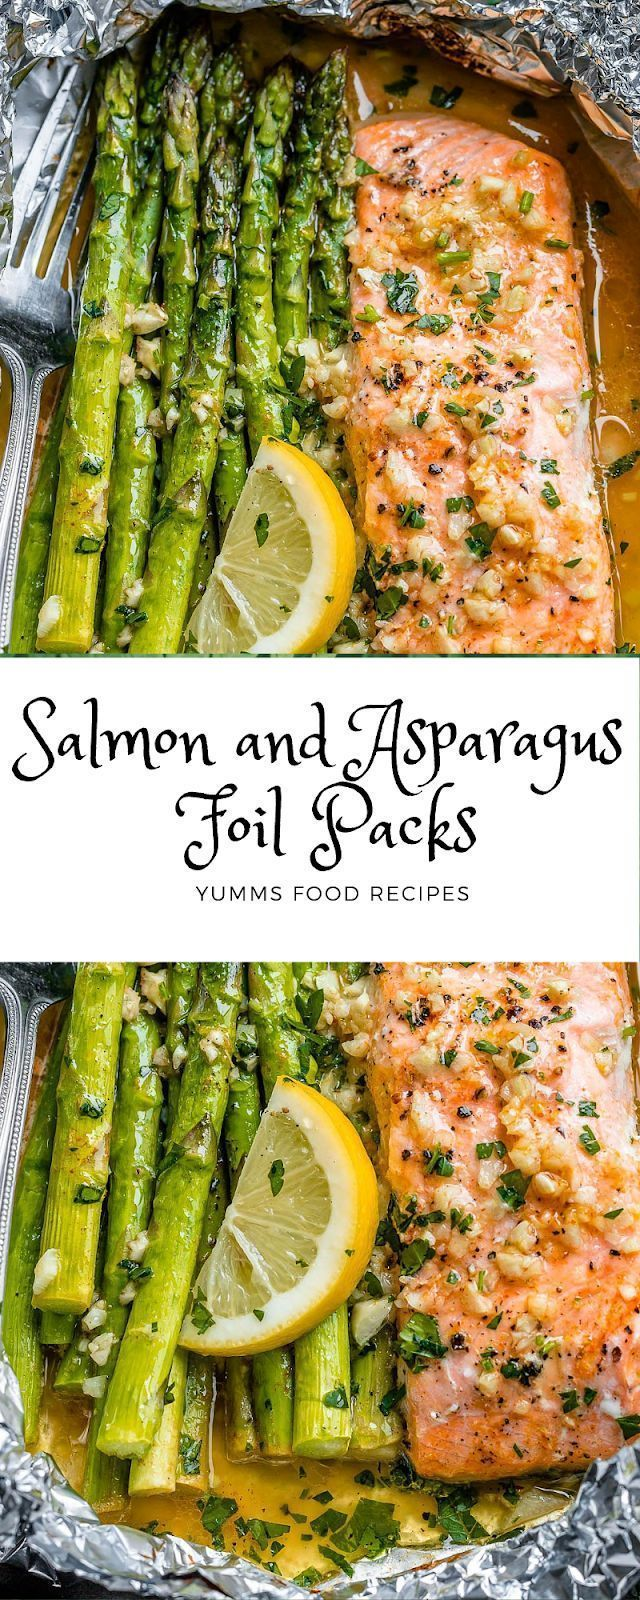 Salmon and Asparagus Pouches Lunch Pack Meals Weight Watchers Meal #a   - foil pack dinners - #asparagus #dinners #Foil #lunch #meal #Meals #Pack #Pouches #Salmon #Watchers #Weight #foilpackdinners